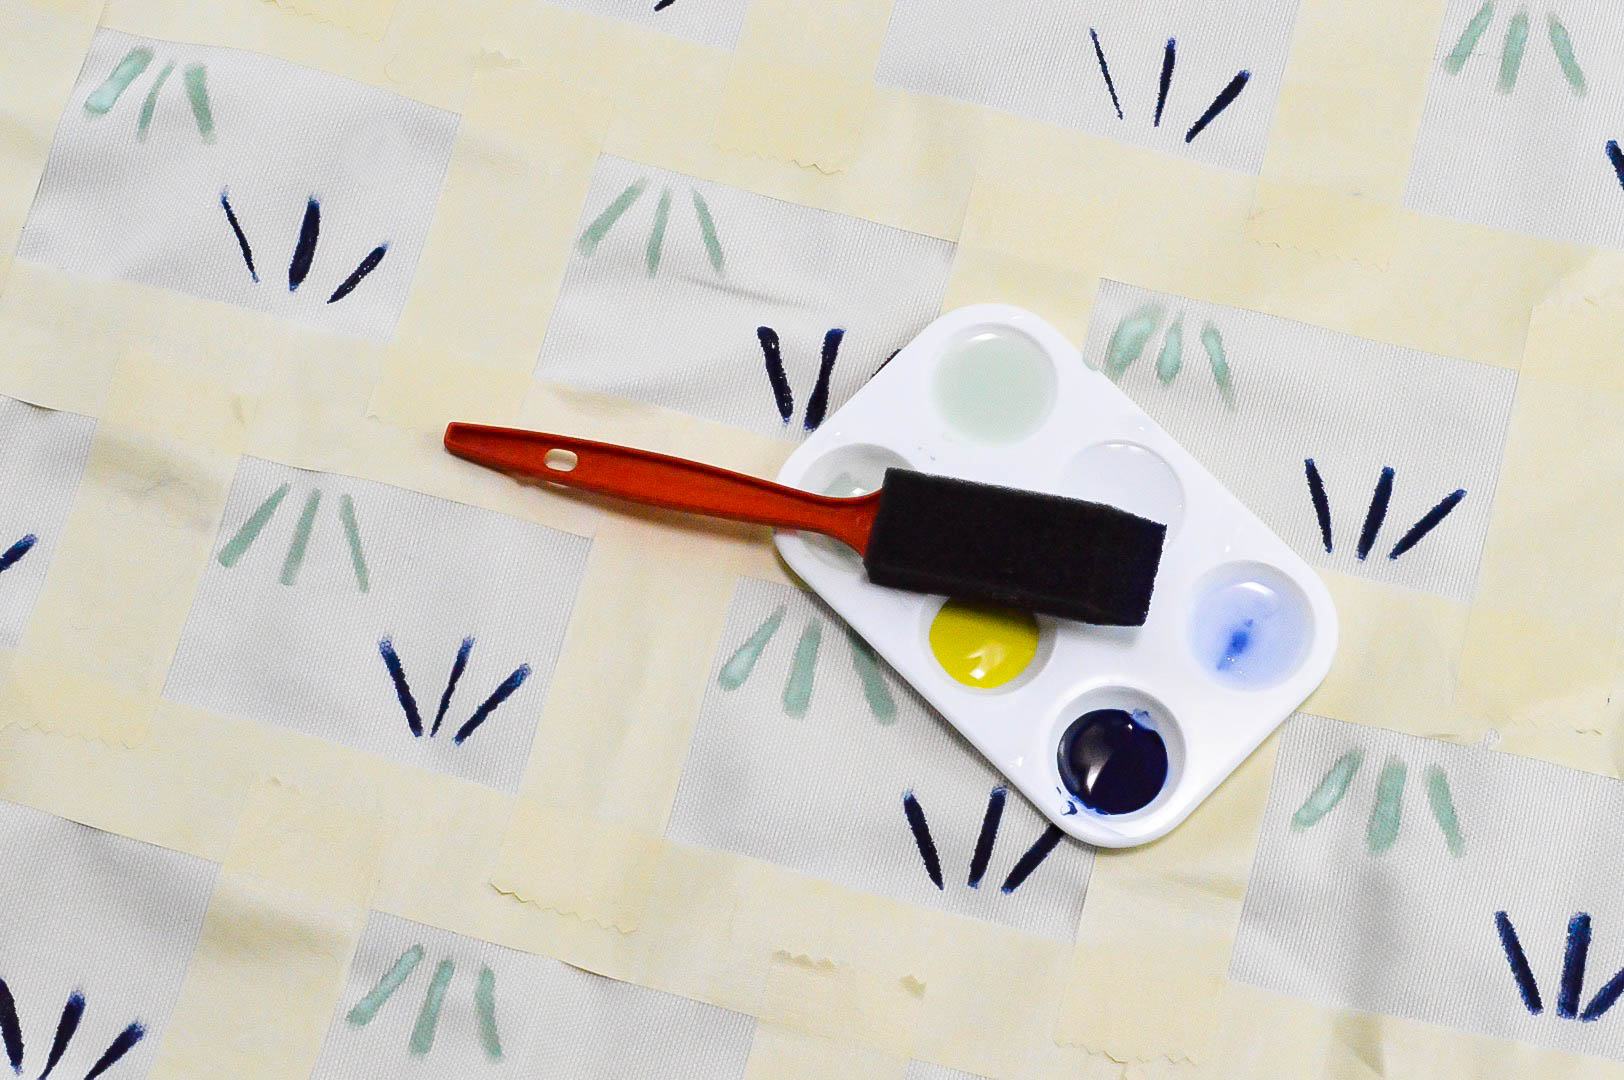 Painted upholstery fabric | creating a pattern using paint | Deco Art | MCM chair | Mid Century Modern | MCM painted chair | reupholstered chair | Simple patter